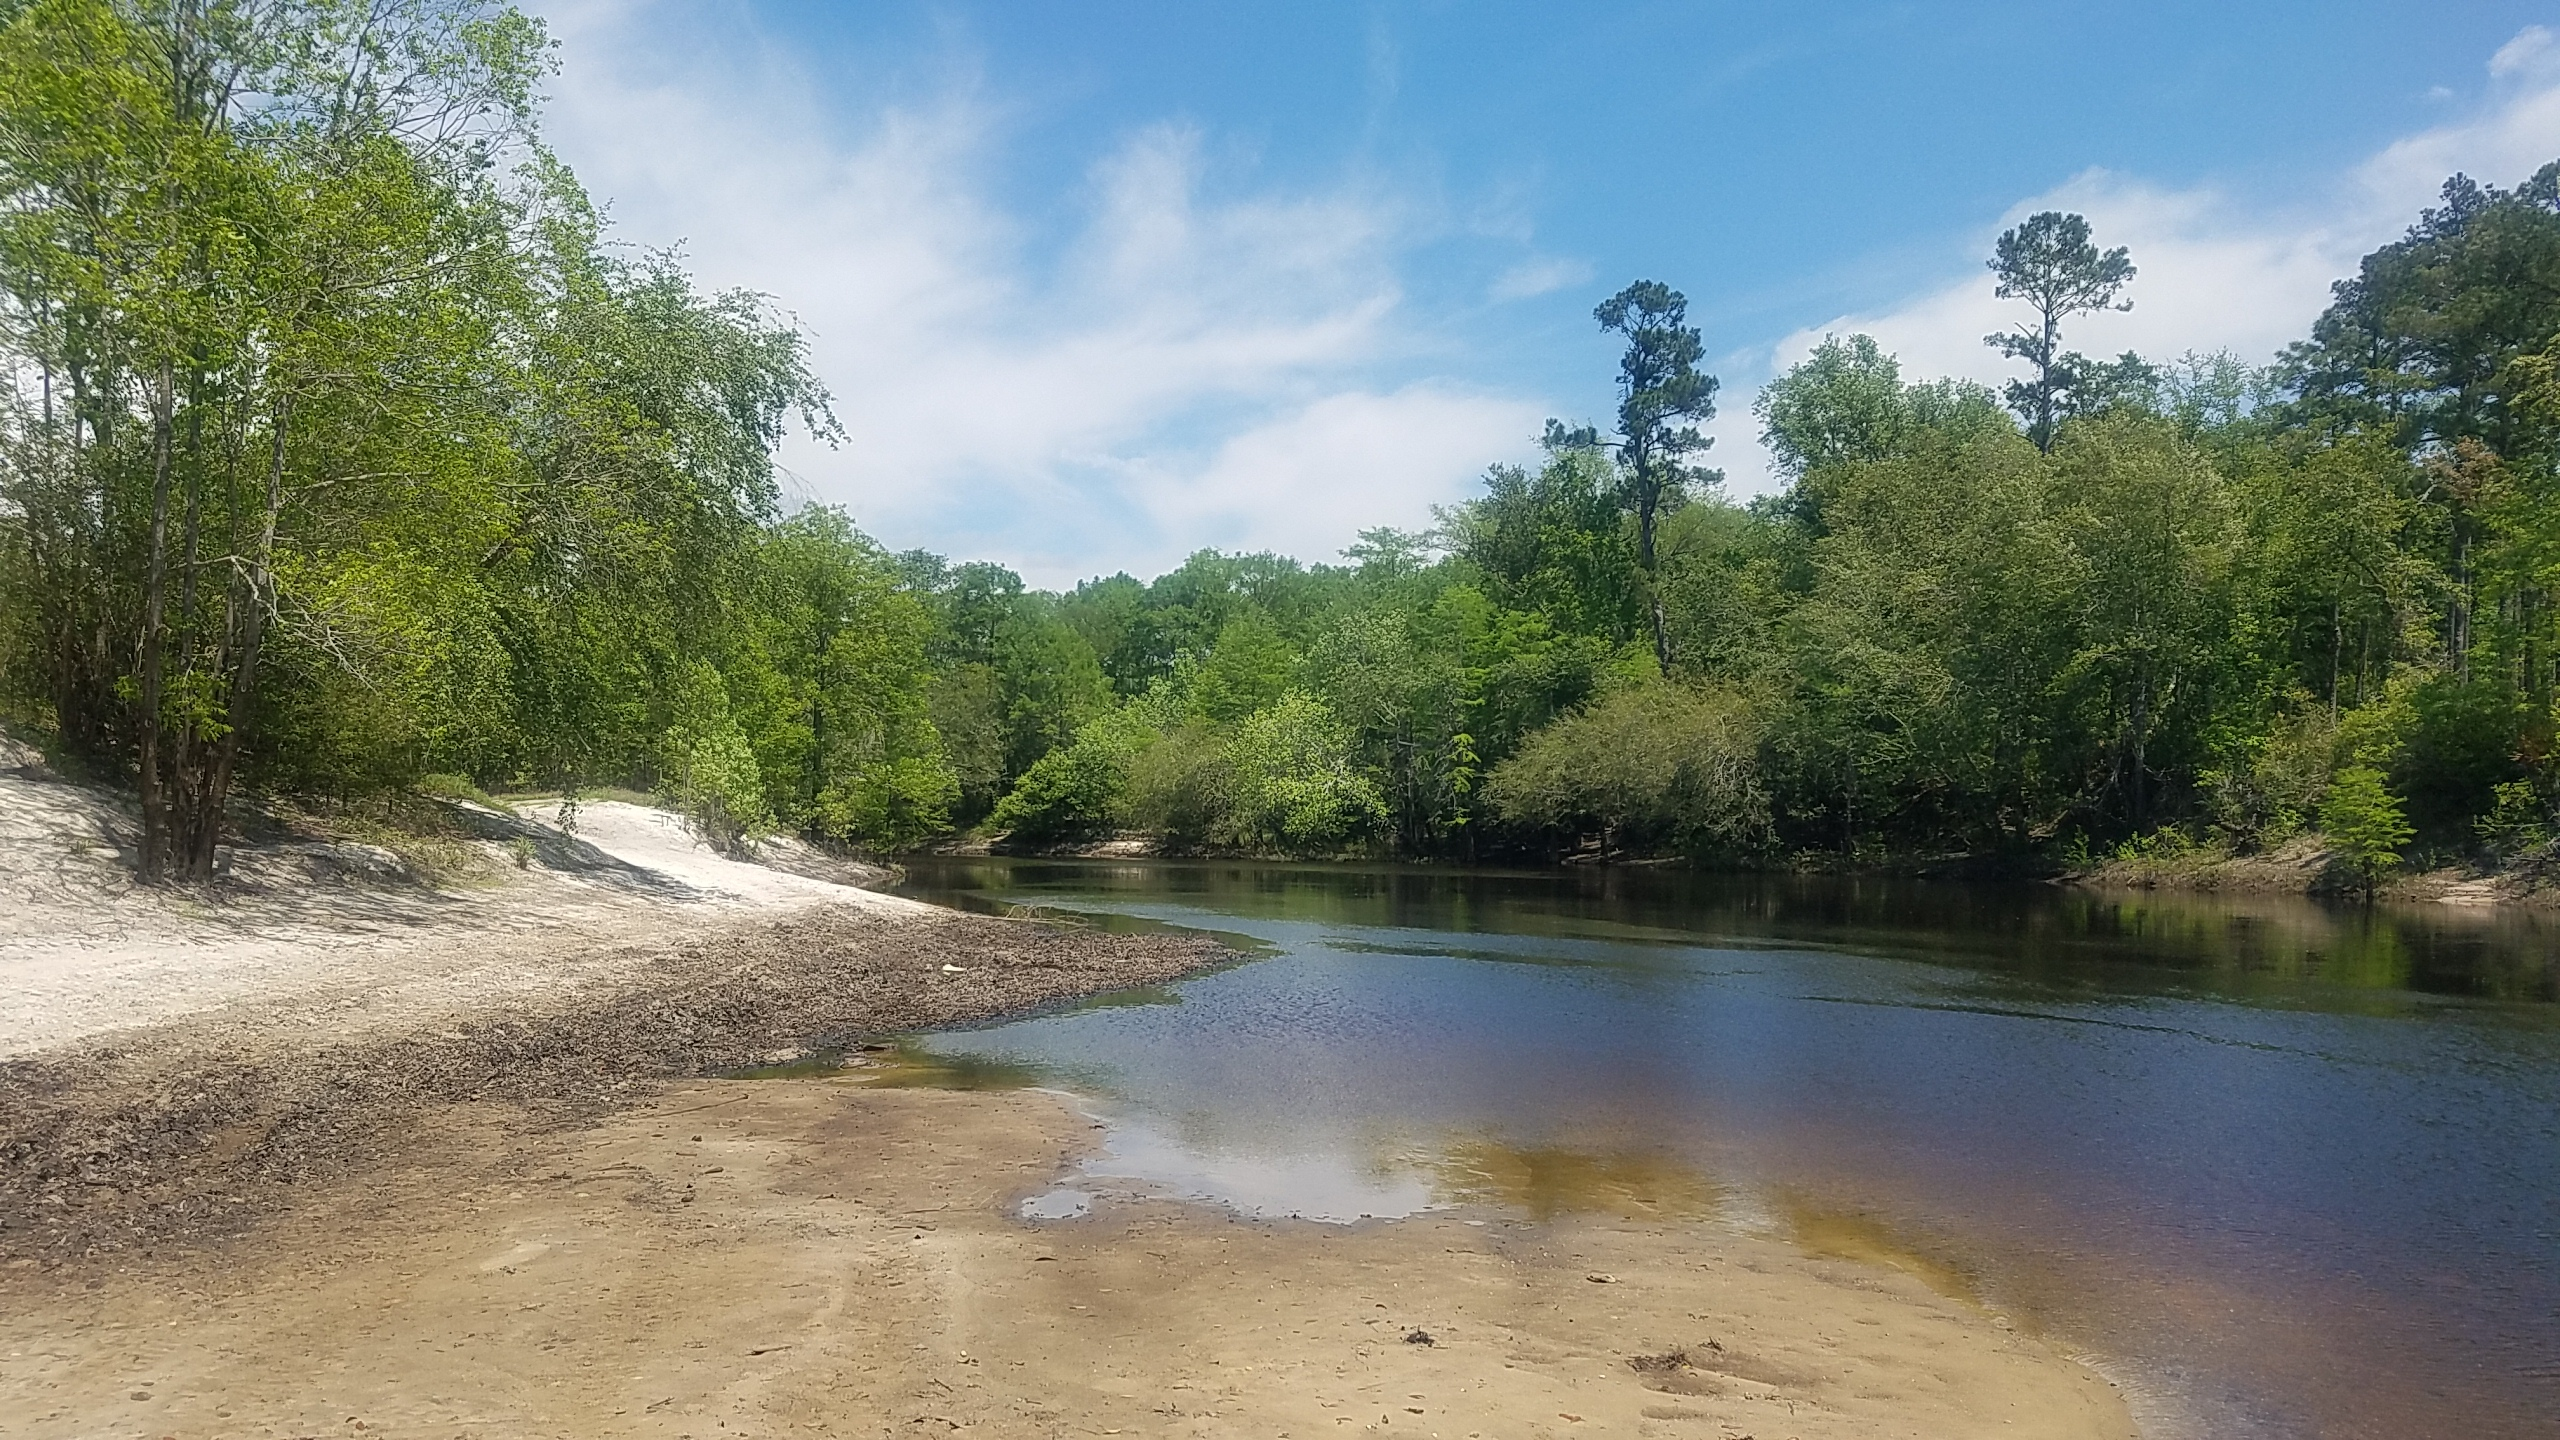 2560x1440 Upstream, Sandbar, in Pafford's Landing, Alapaha River Water Trail, by John S. Quarterman, for WWALS.net, 26 April 2018